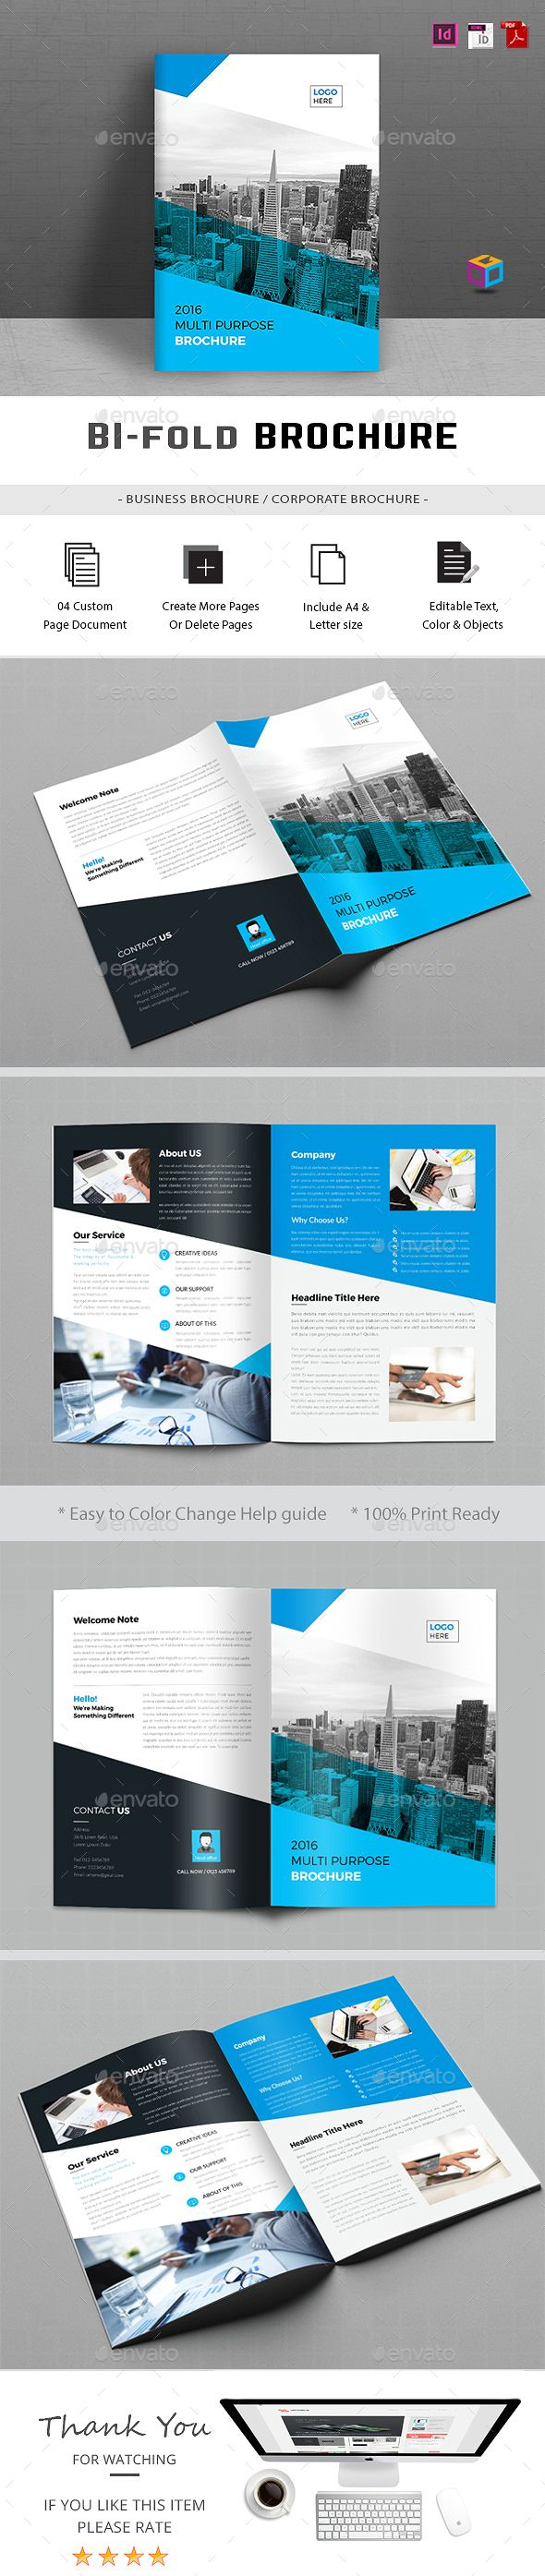 Best BiFold Brochure Designs Images On Pinterest Brochures - Bi fold brochure template indesign